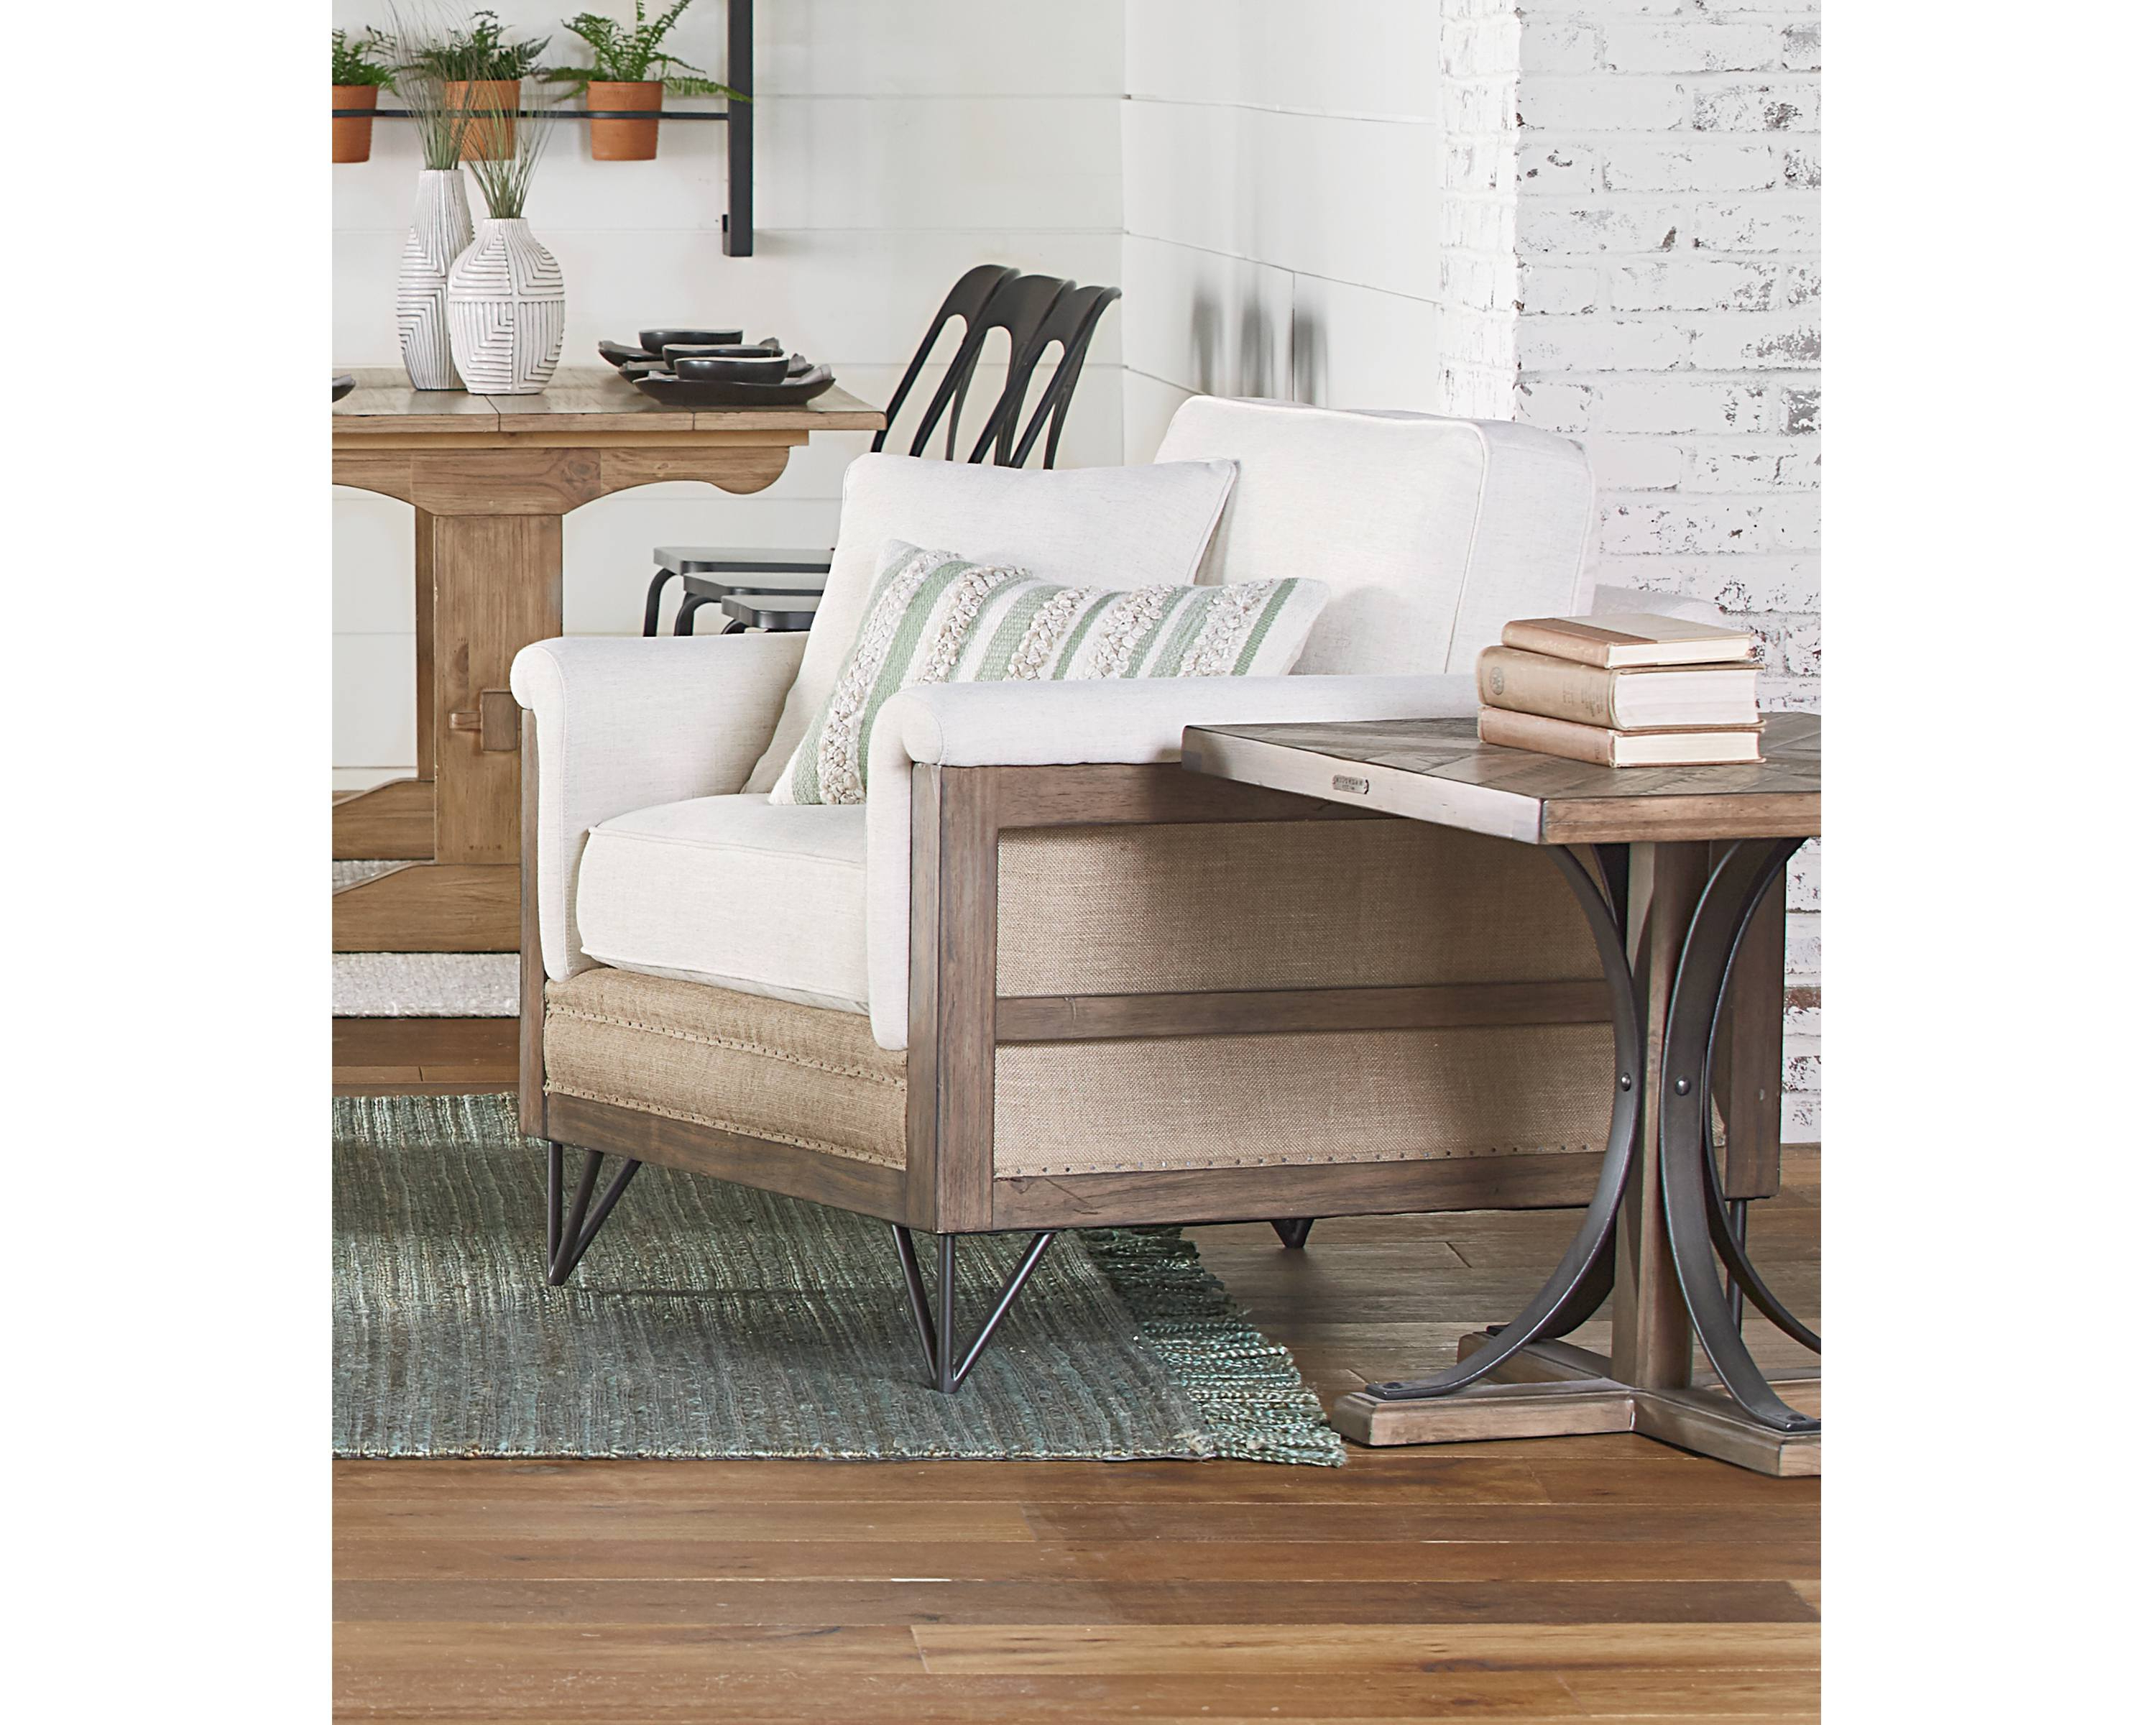 Fashionable Paradigm Chair – Magnolia Home For Magnolia Home Paradigm Sofa Chairs By Joanna Gaines (View 9 of 20)